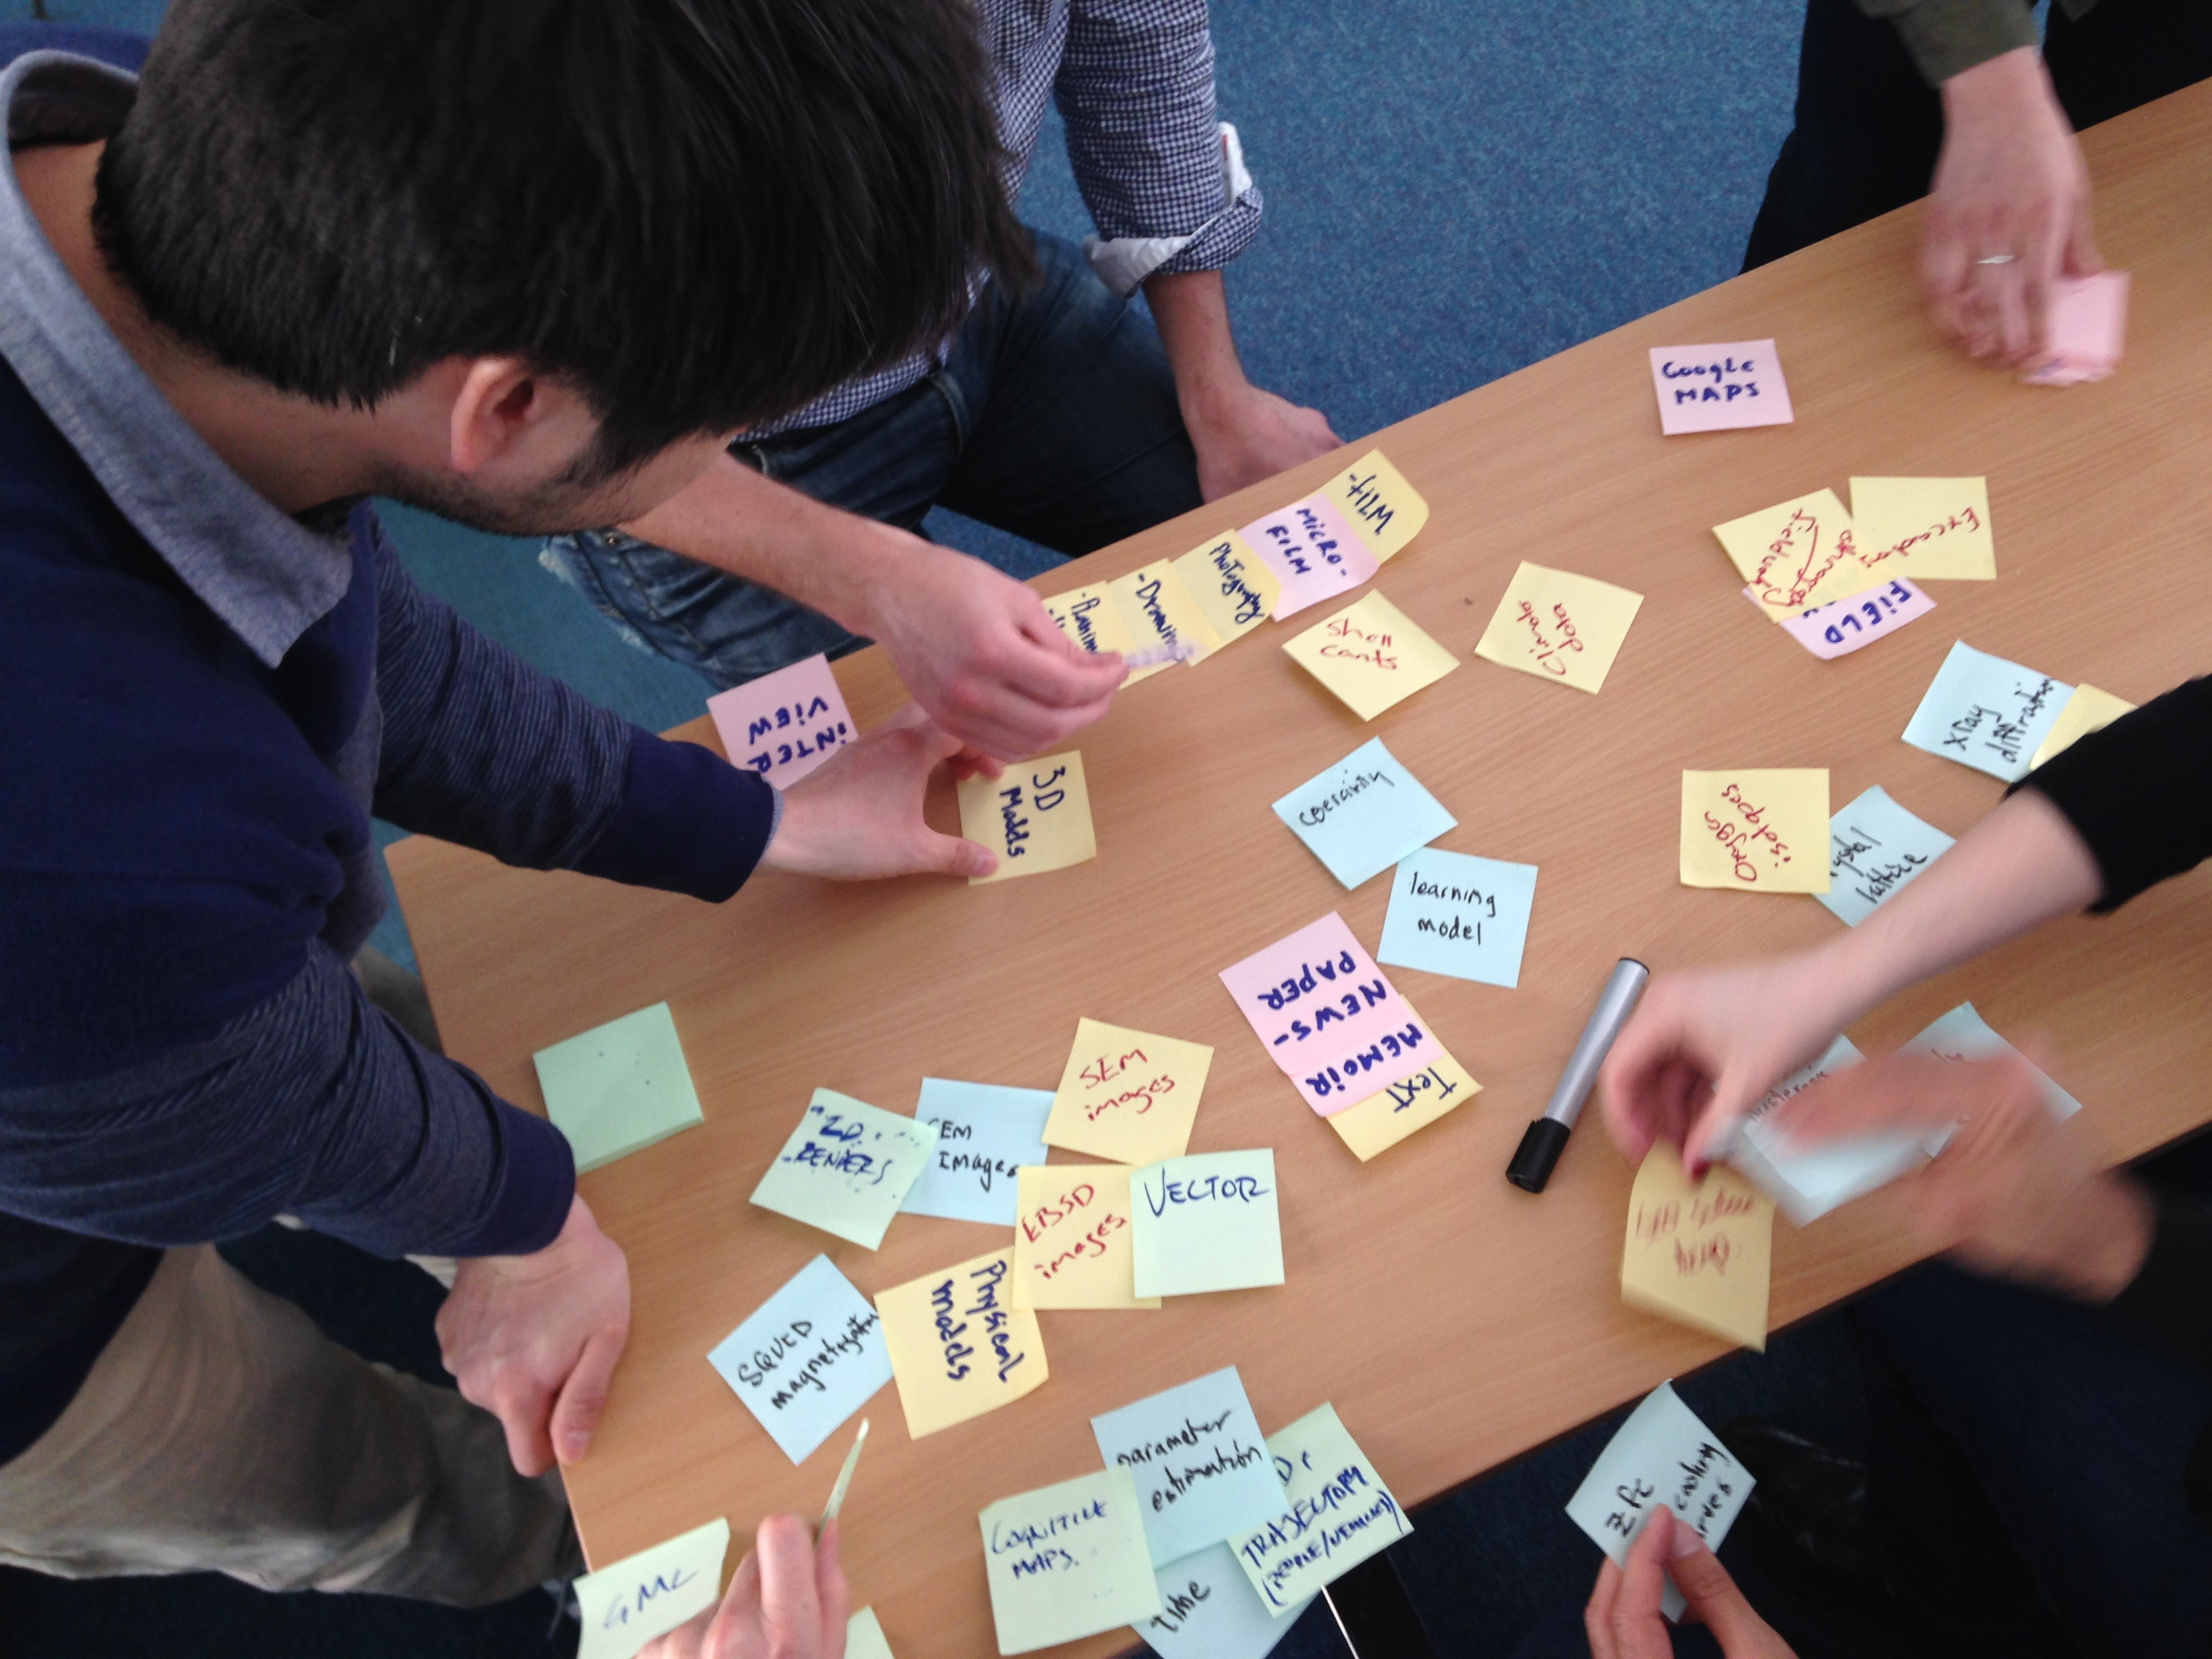 Photo of participants brainstorming with post-it notes at the workshop.